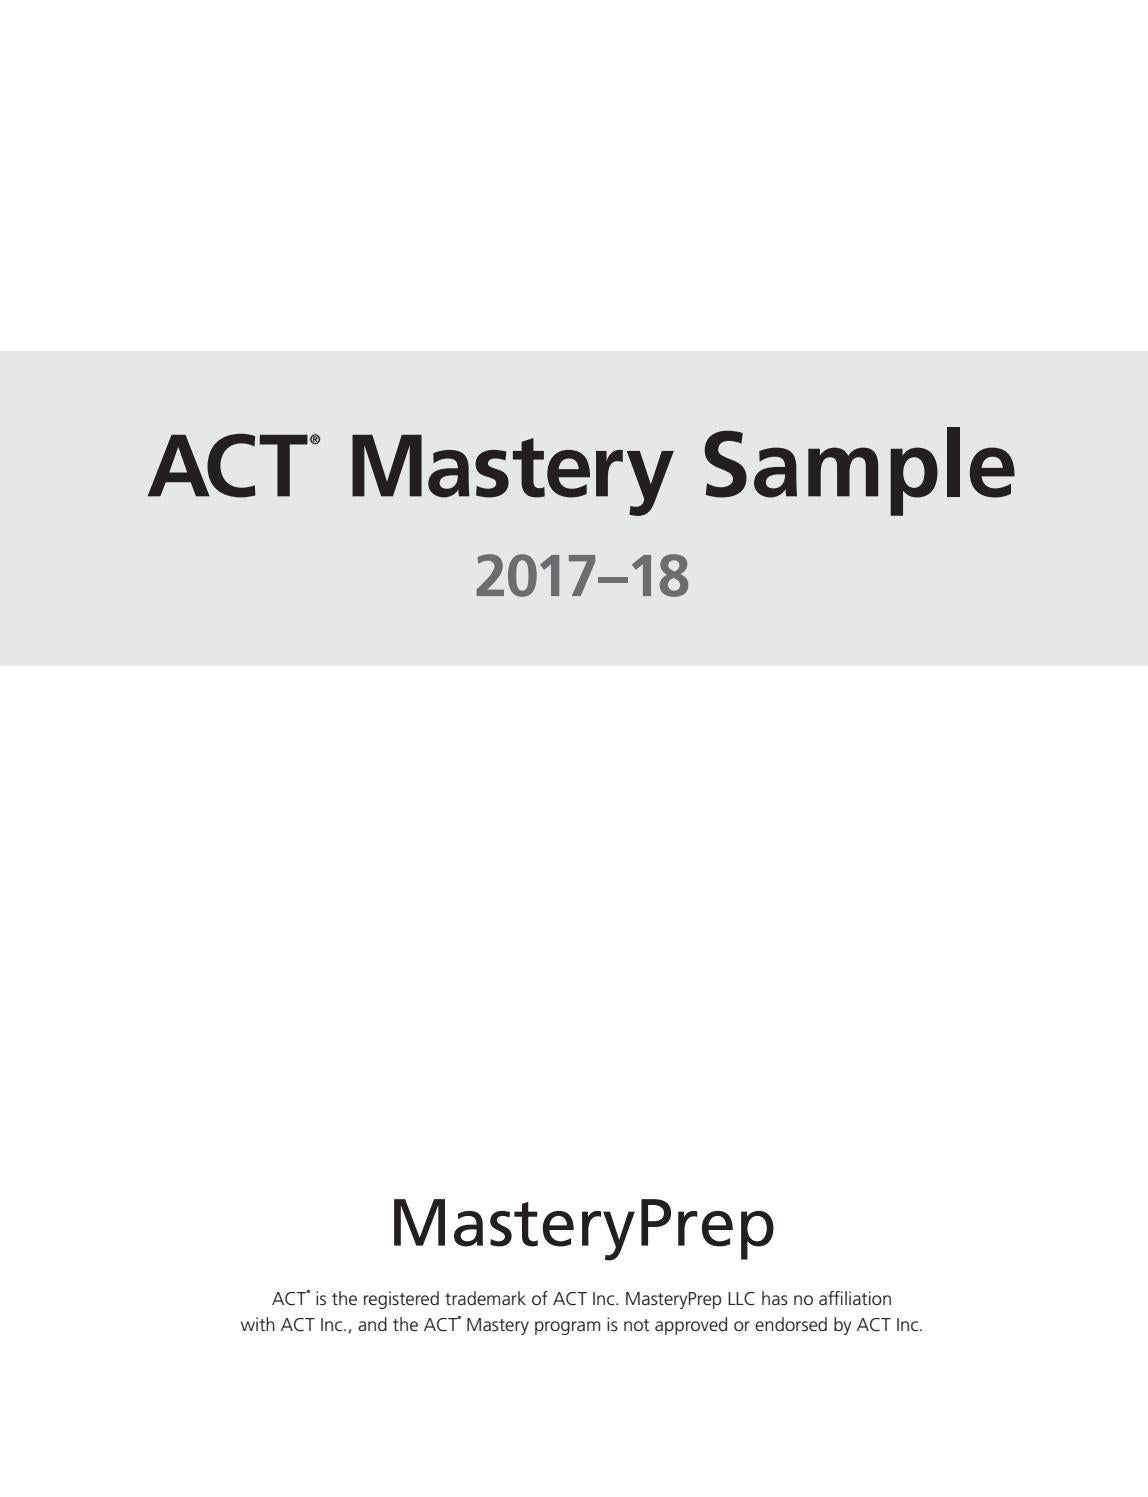 Sample | ACT Mastery Complete, 2017-18 by MasteryPrep - issuu